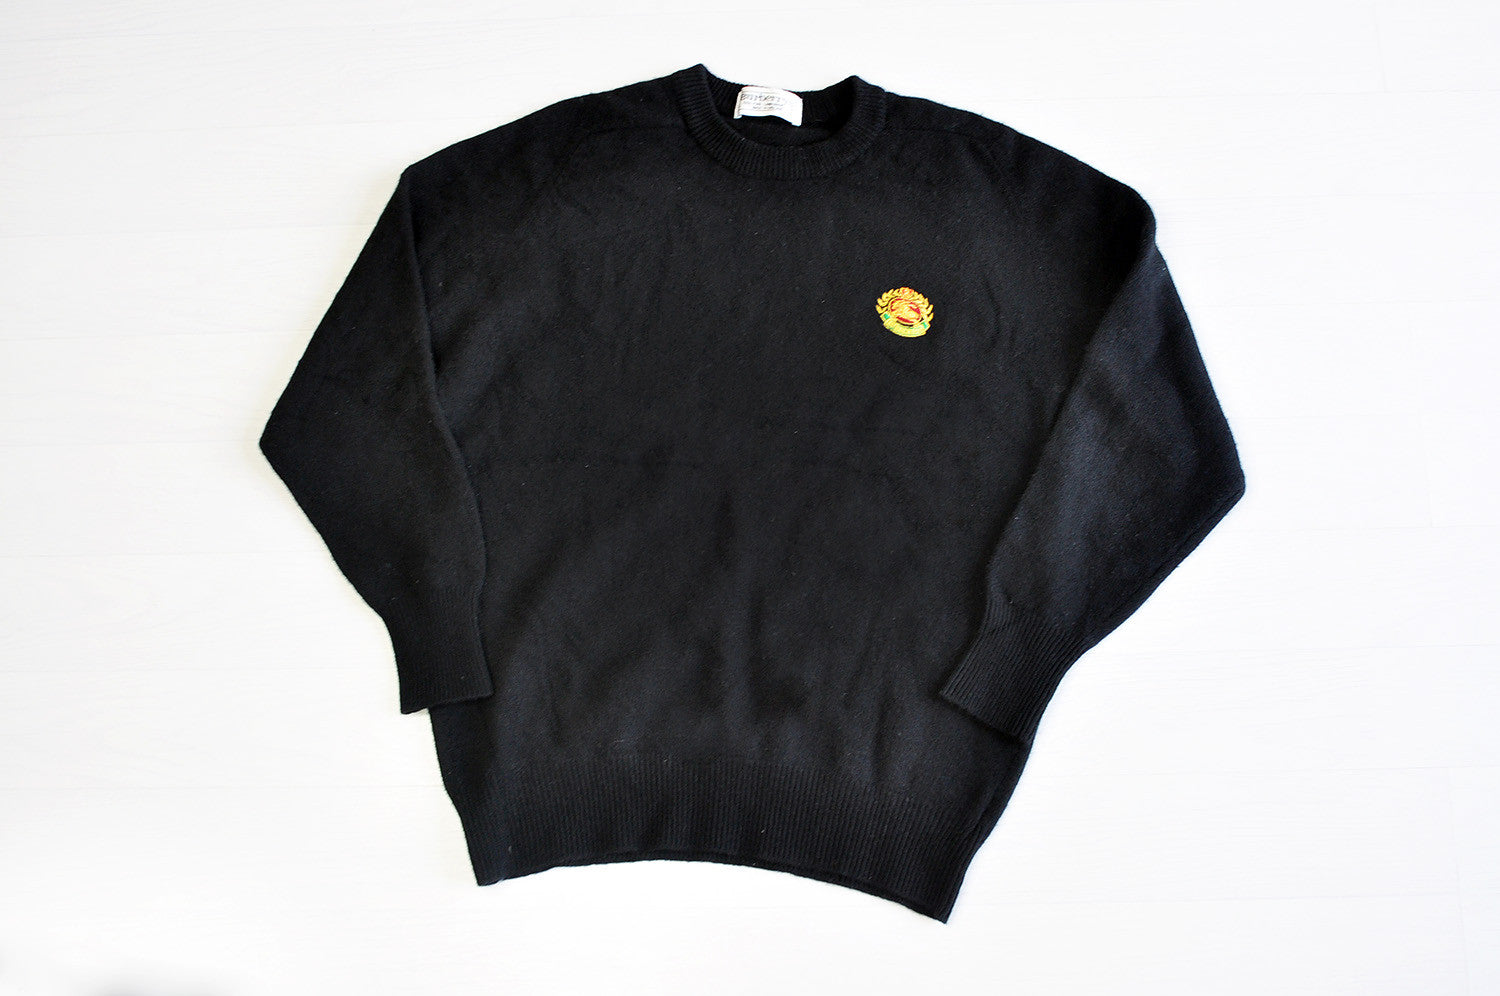 Vintage Burberry Embroidery Pure Lambswool Black Knit Jumper/Sweater